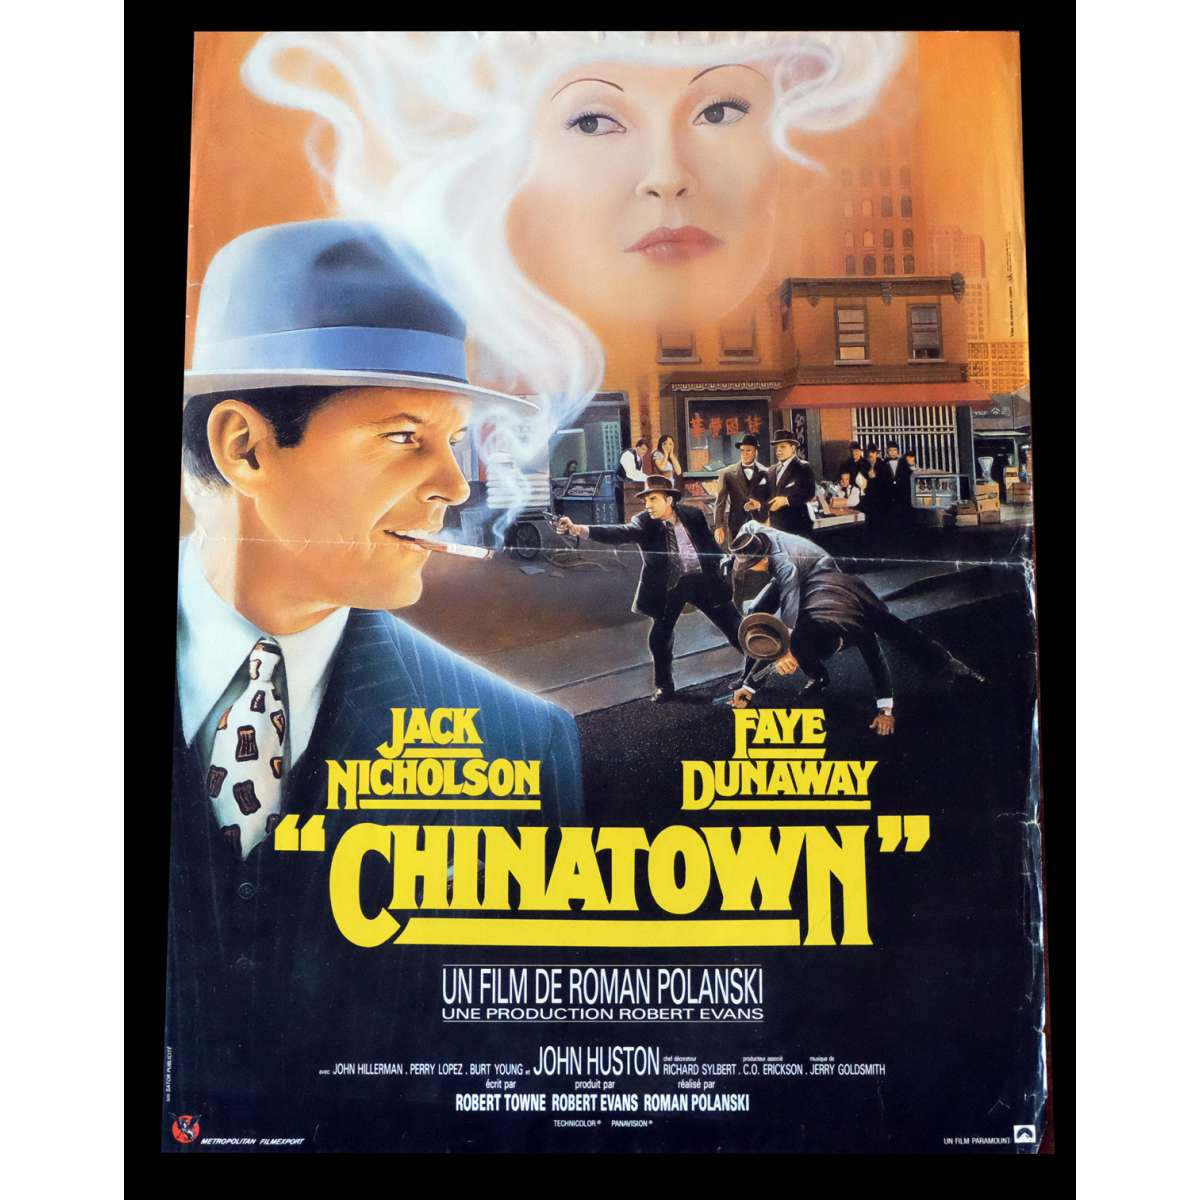 a review of chinatown a movie by roman polanski